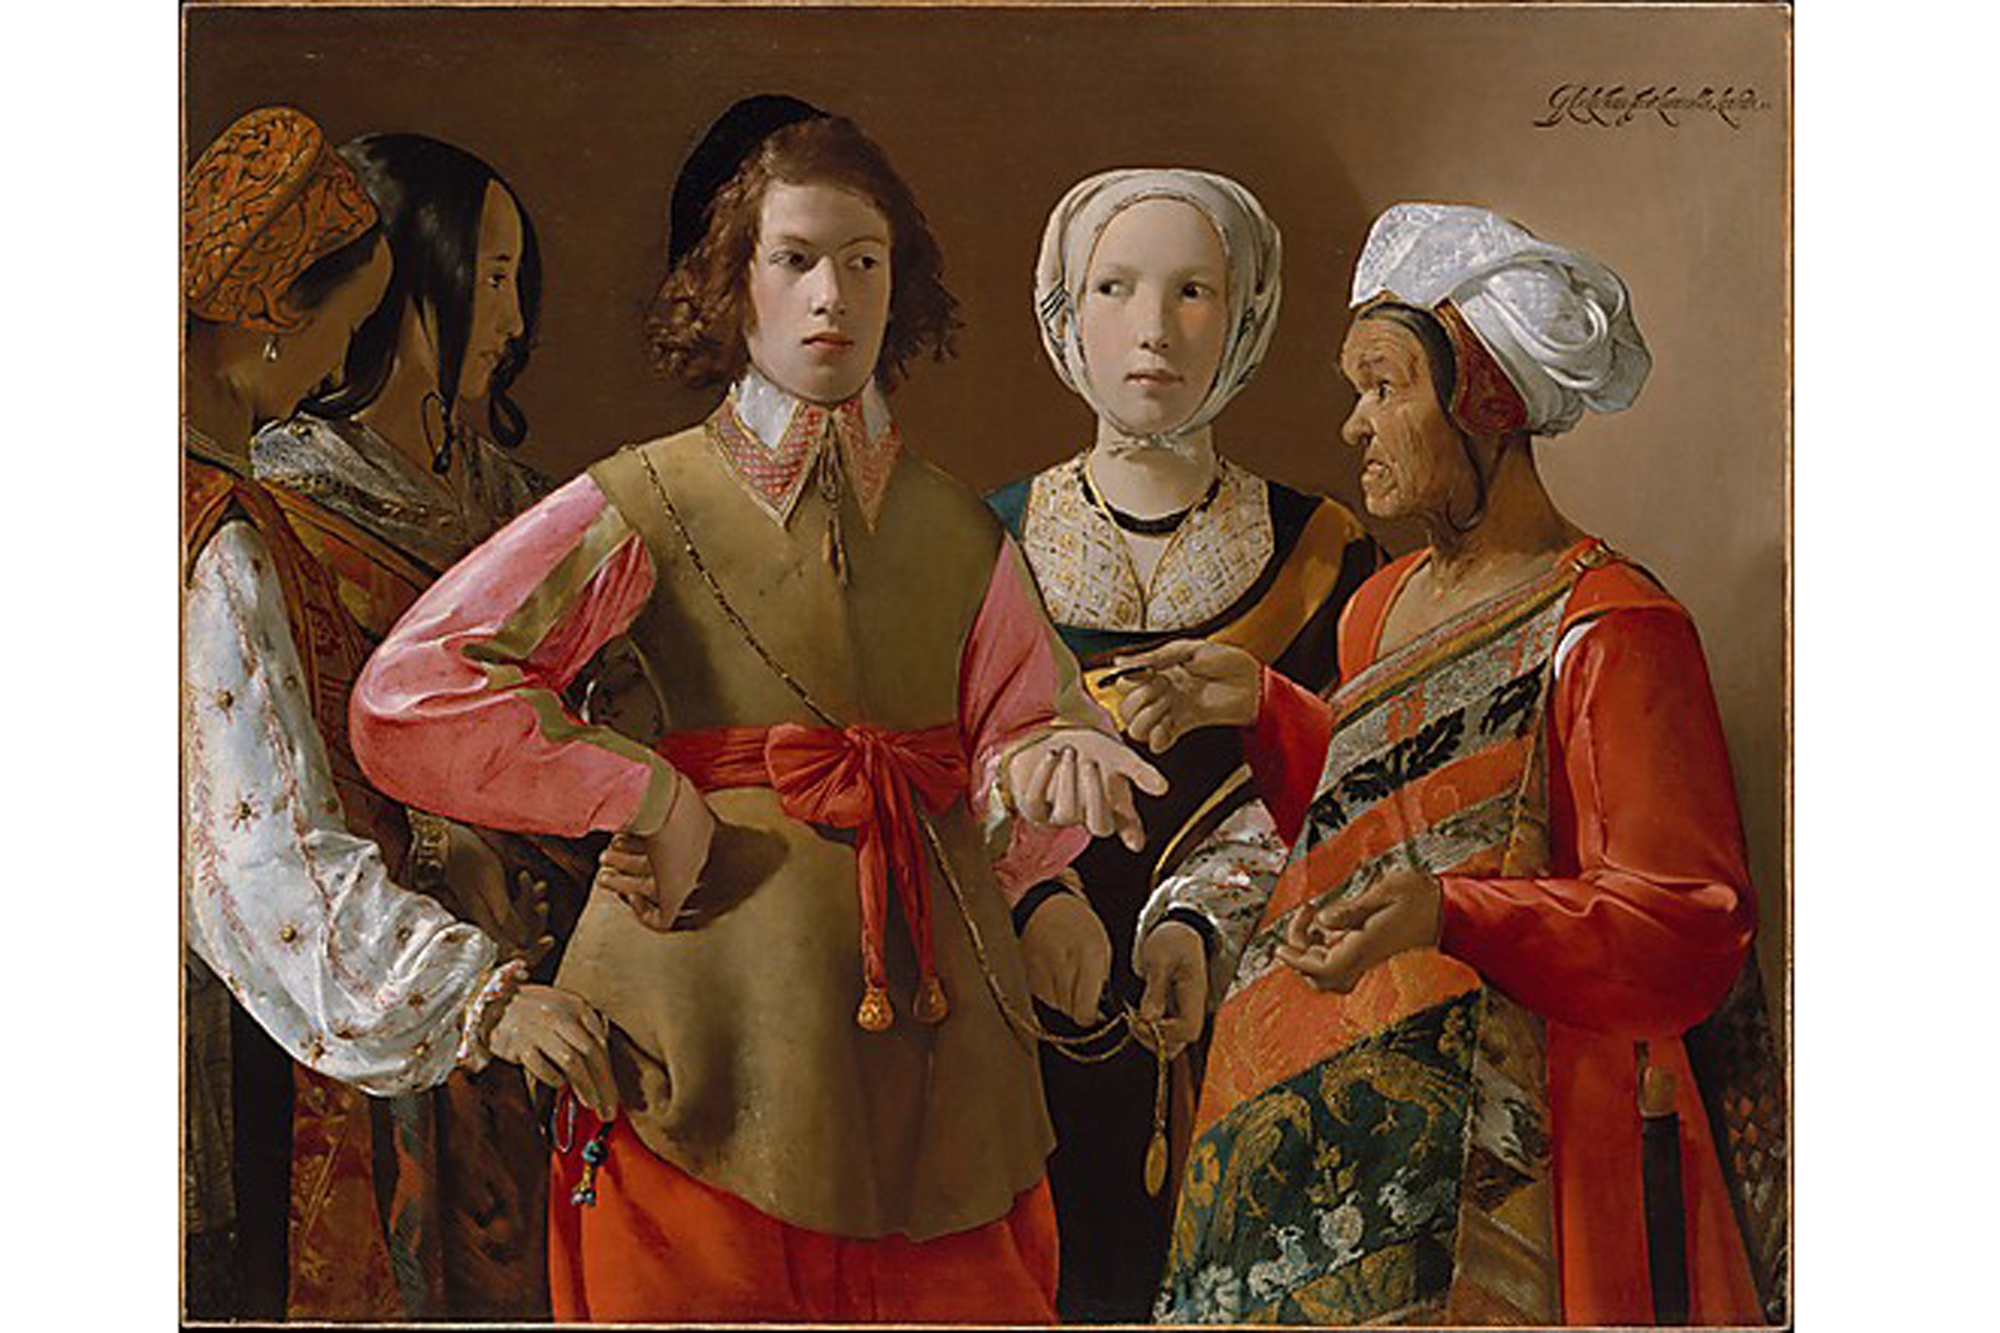 Georges de La Tour, The Fortune Teller (ca. 1630)